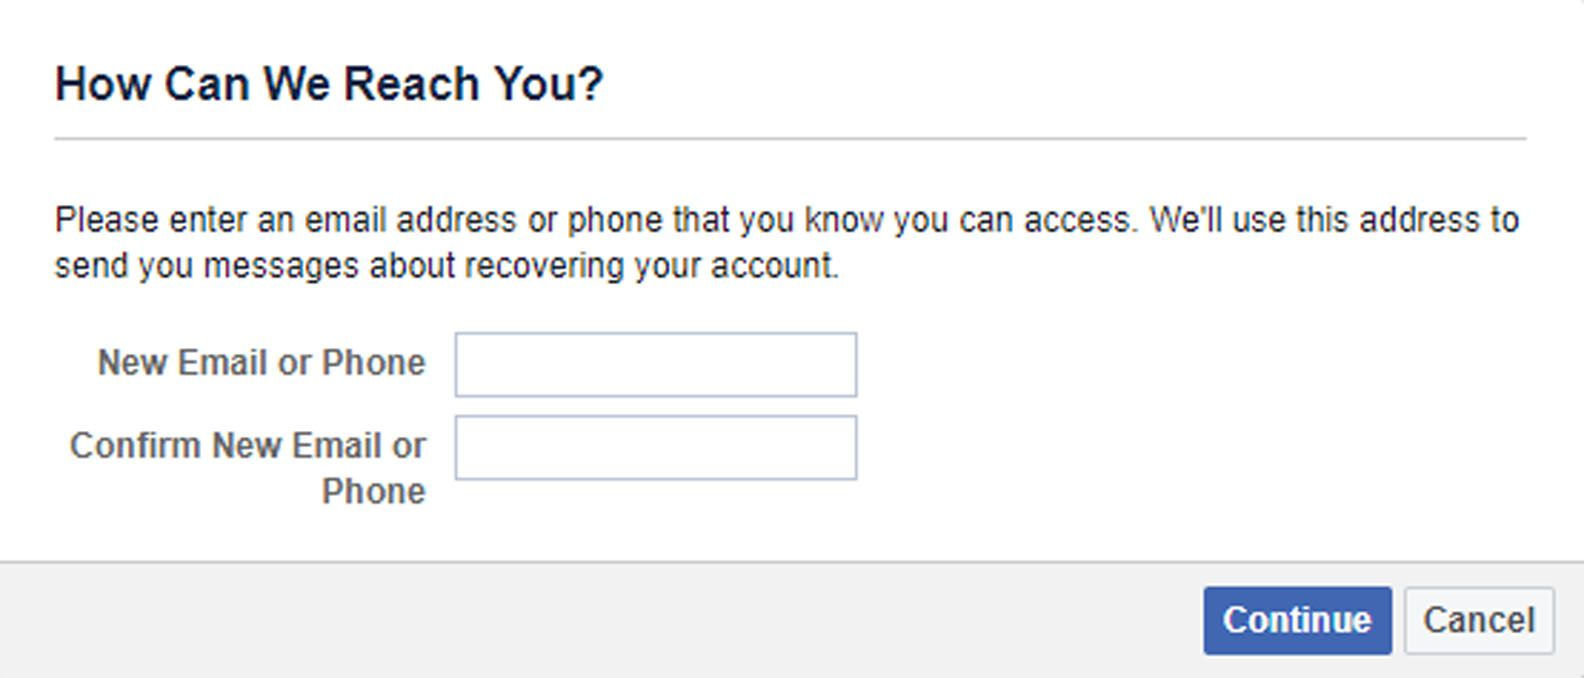 How to Recover Your Facebook Password Without Email and